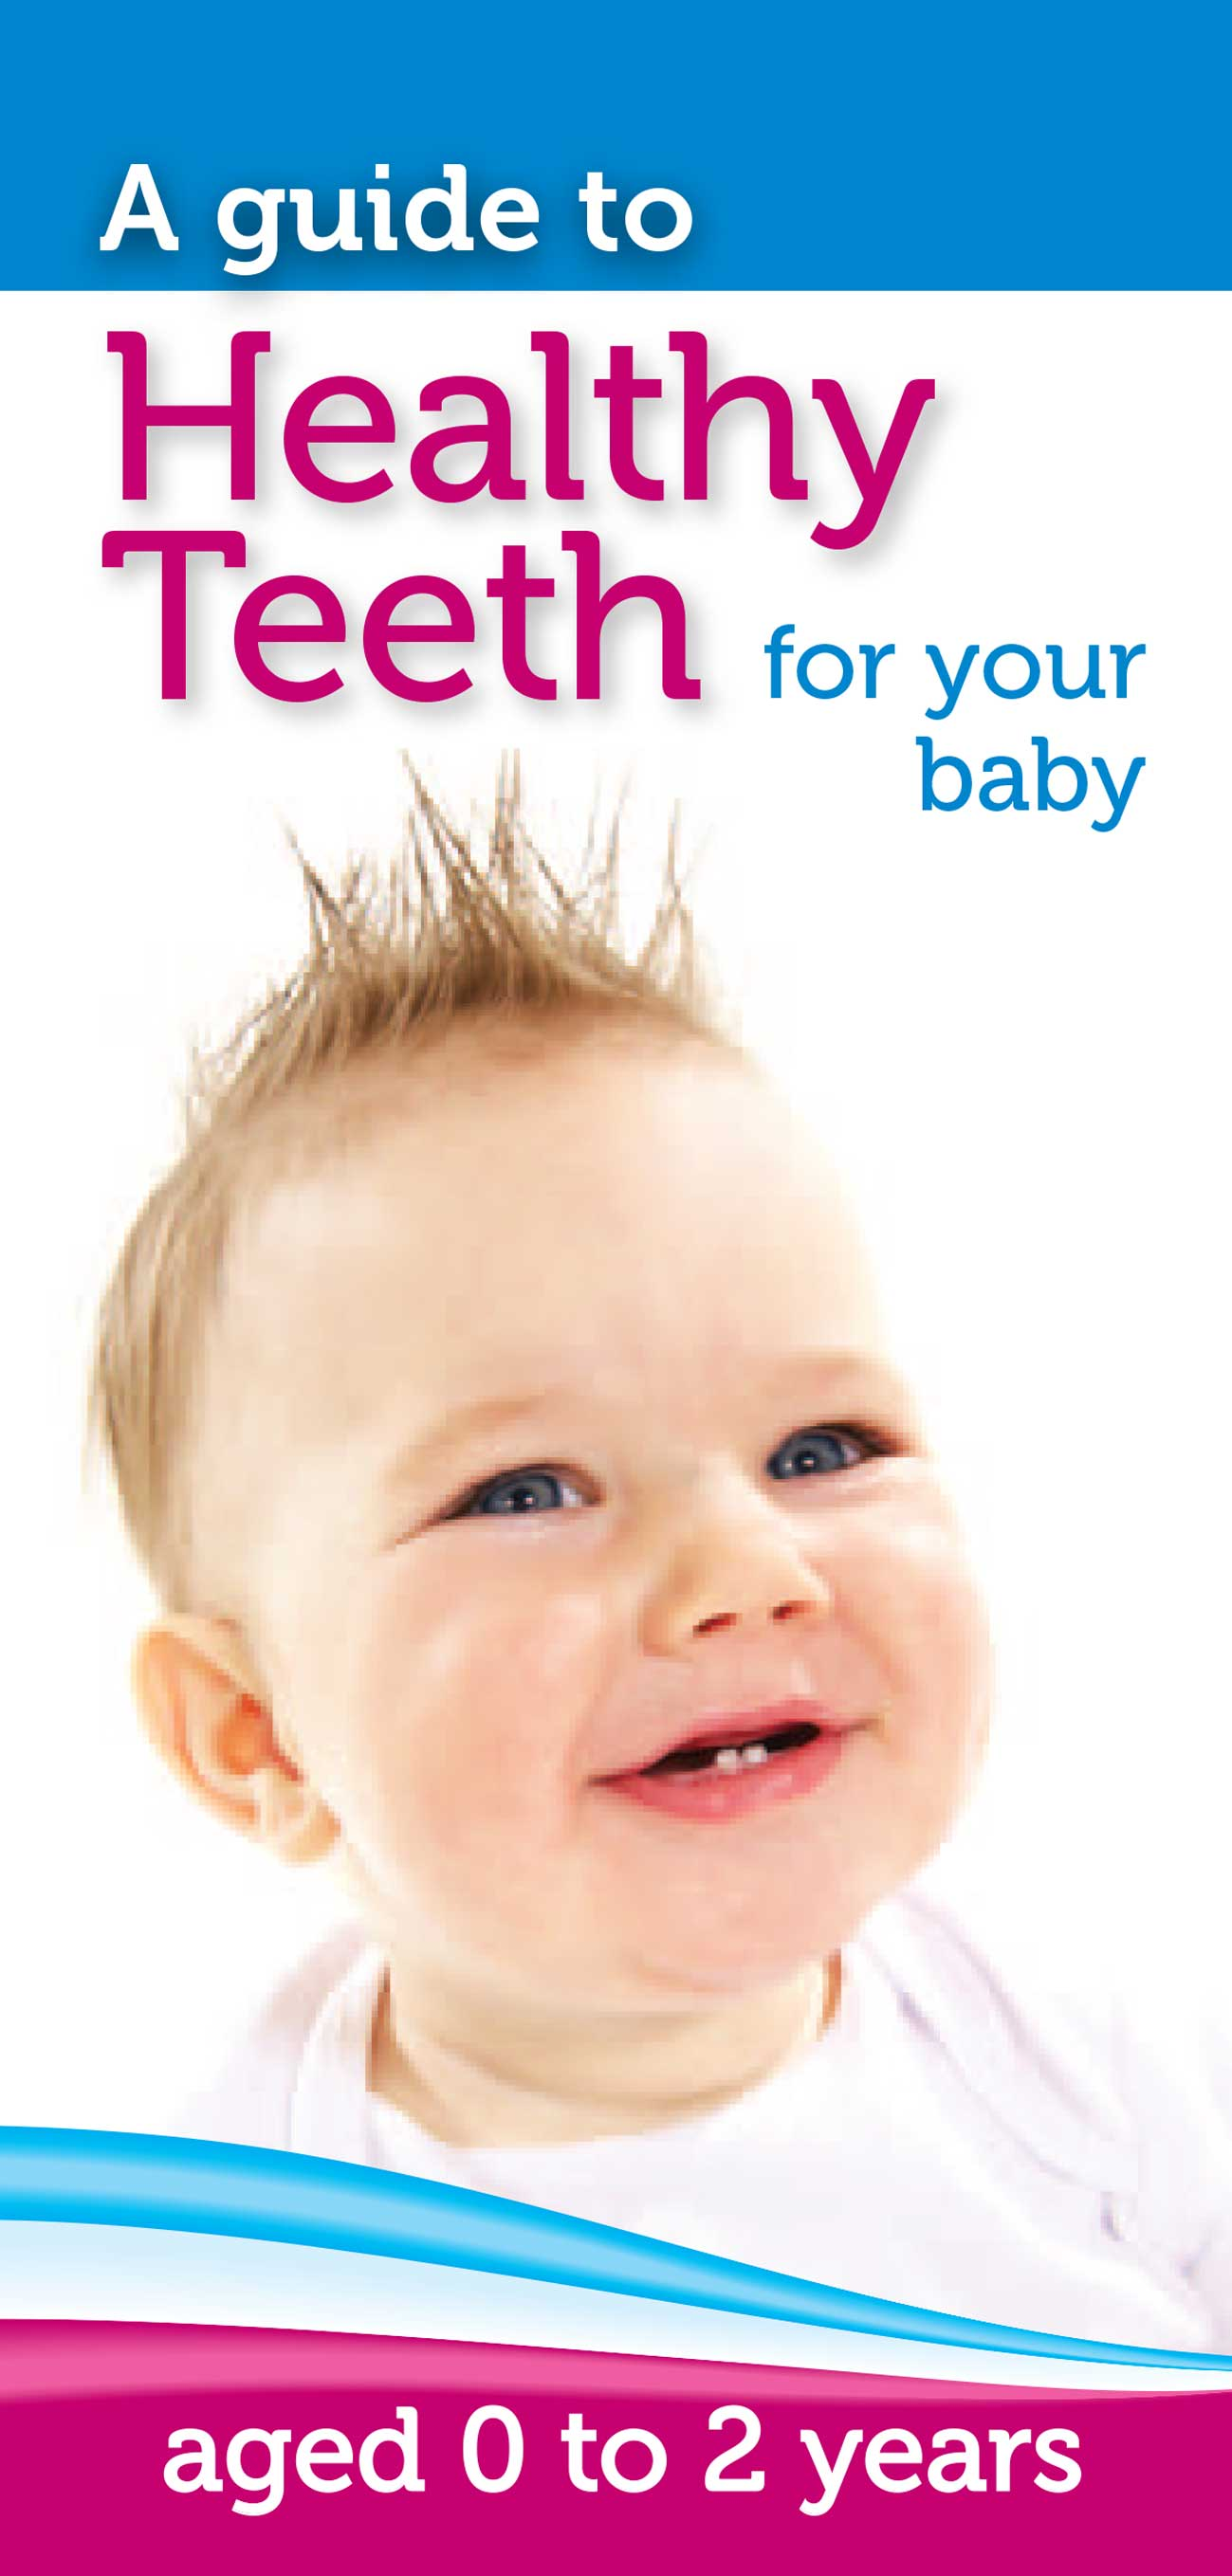 Healthy Teeth for your baby